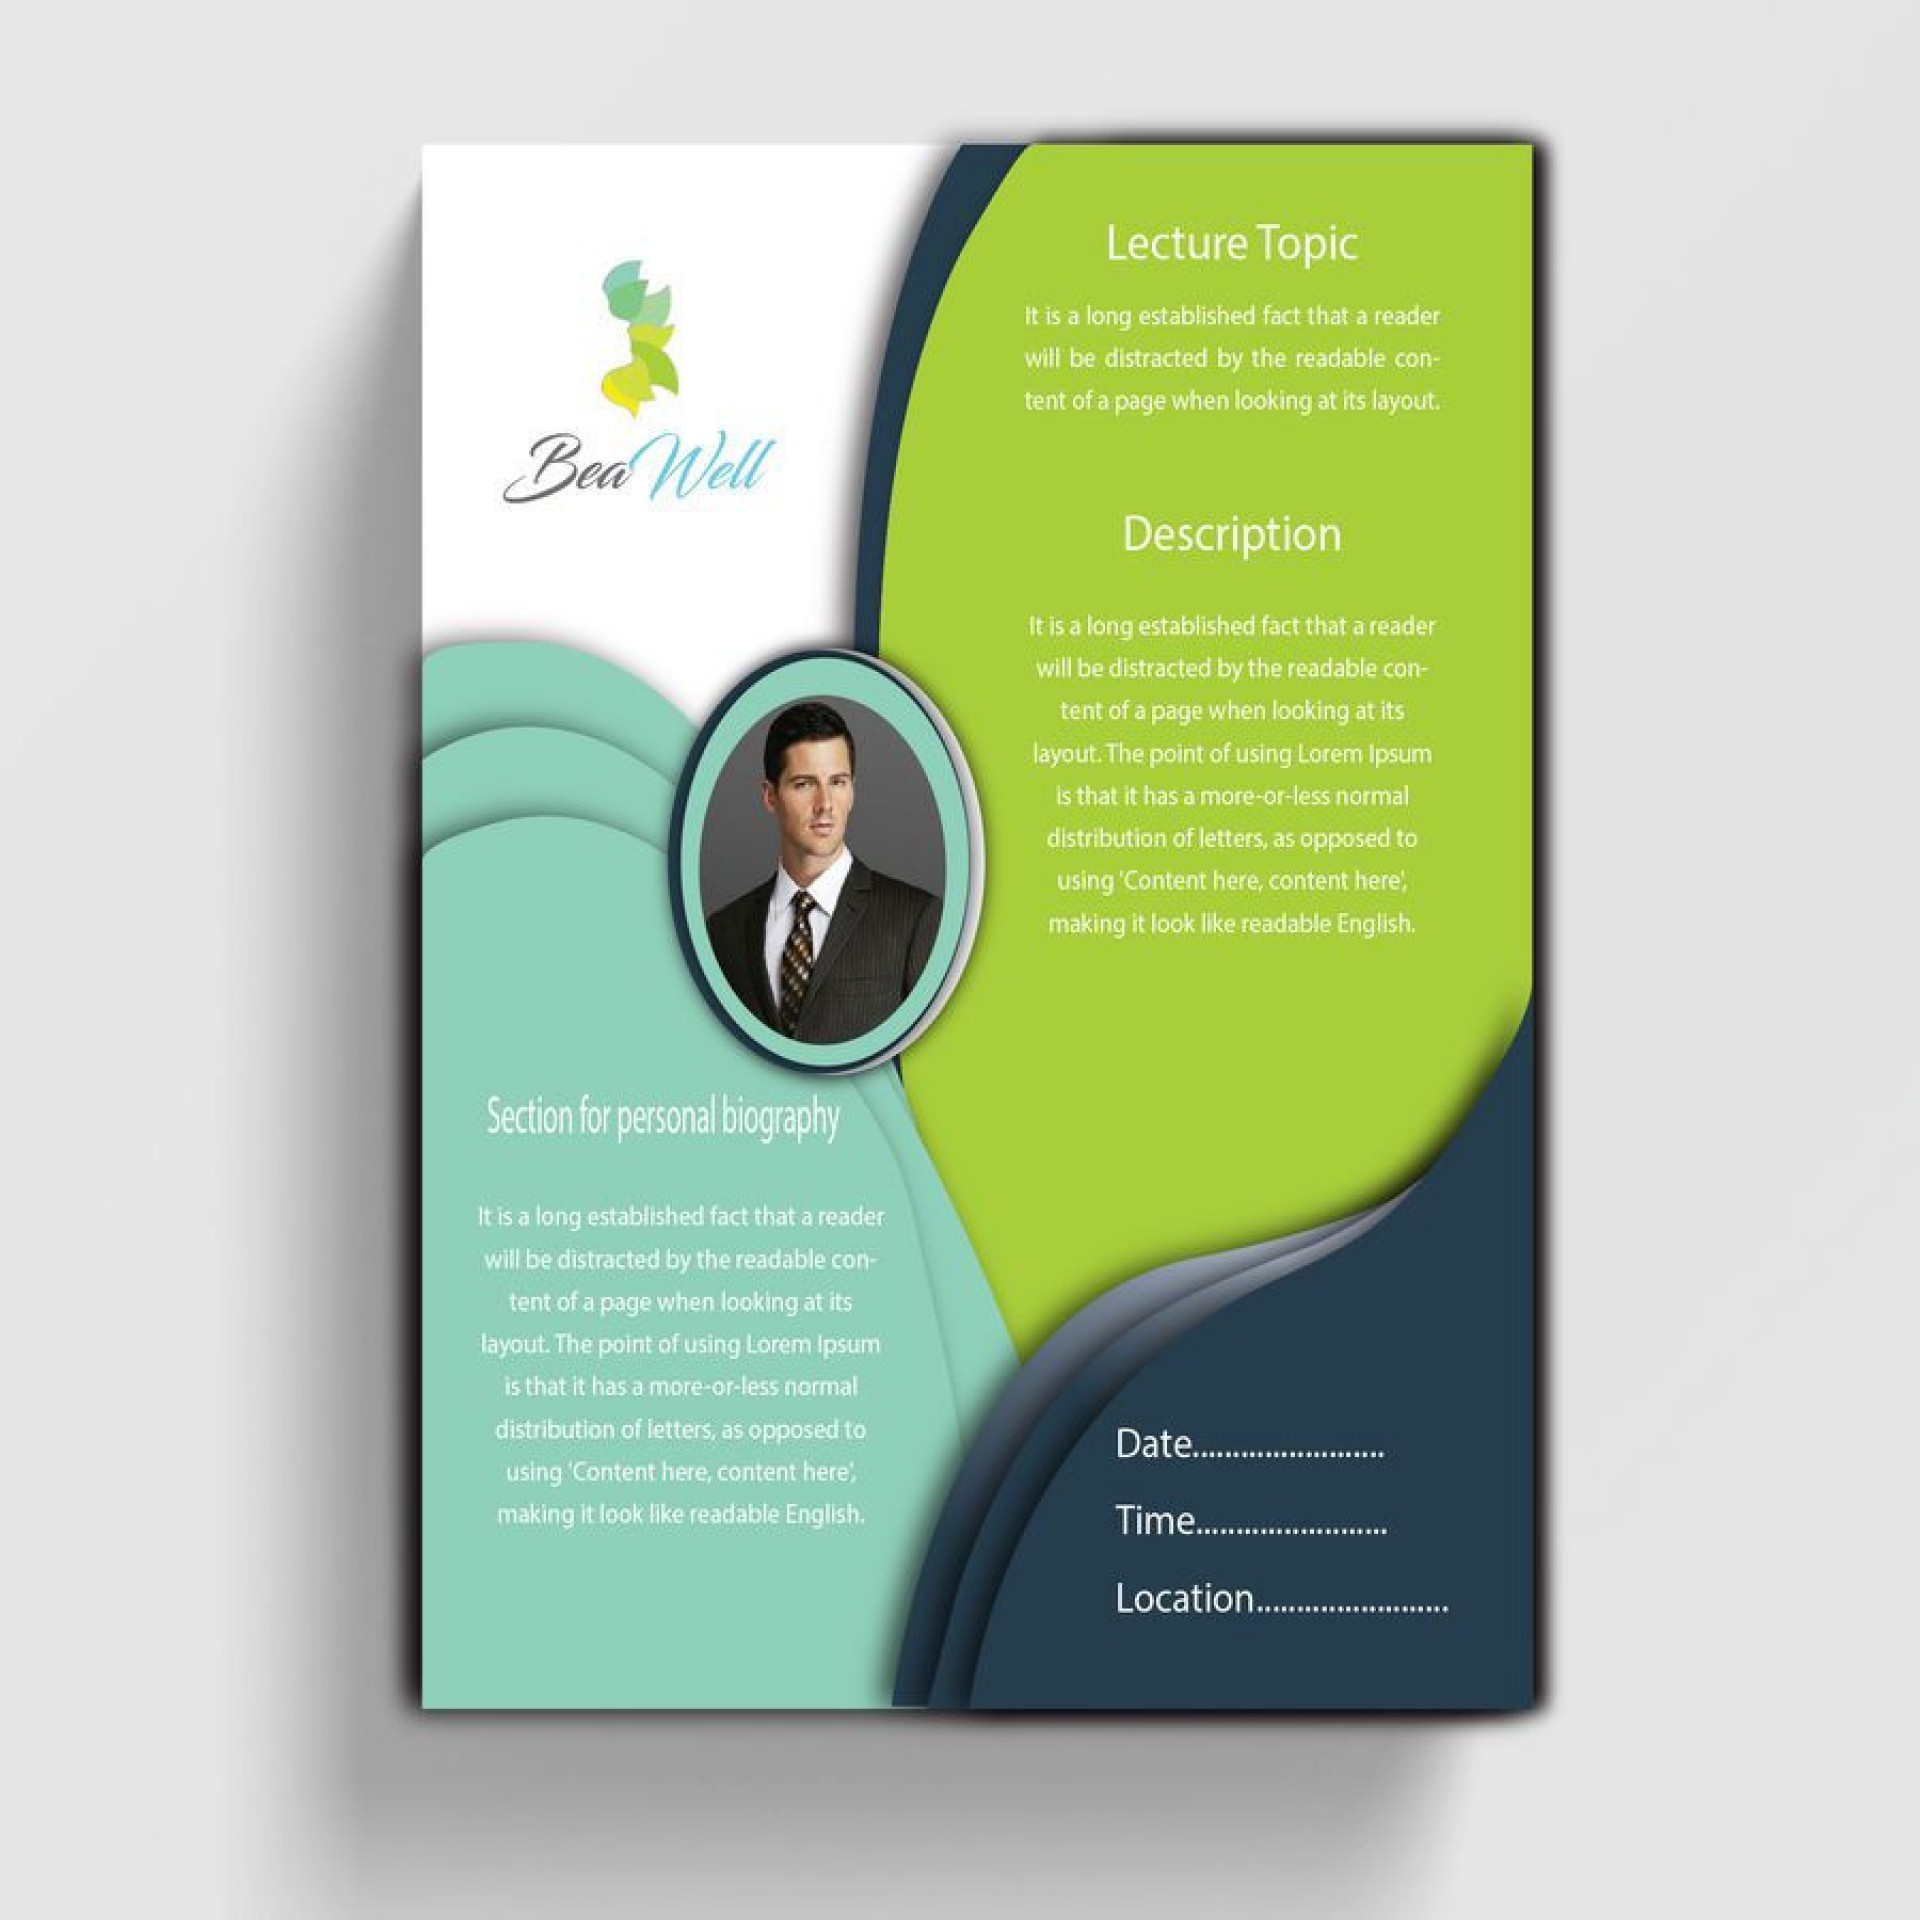 000 Beautiful Microsoft Publisher Flyer Template Sample  Office Free Event Download1920